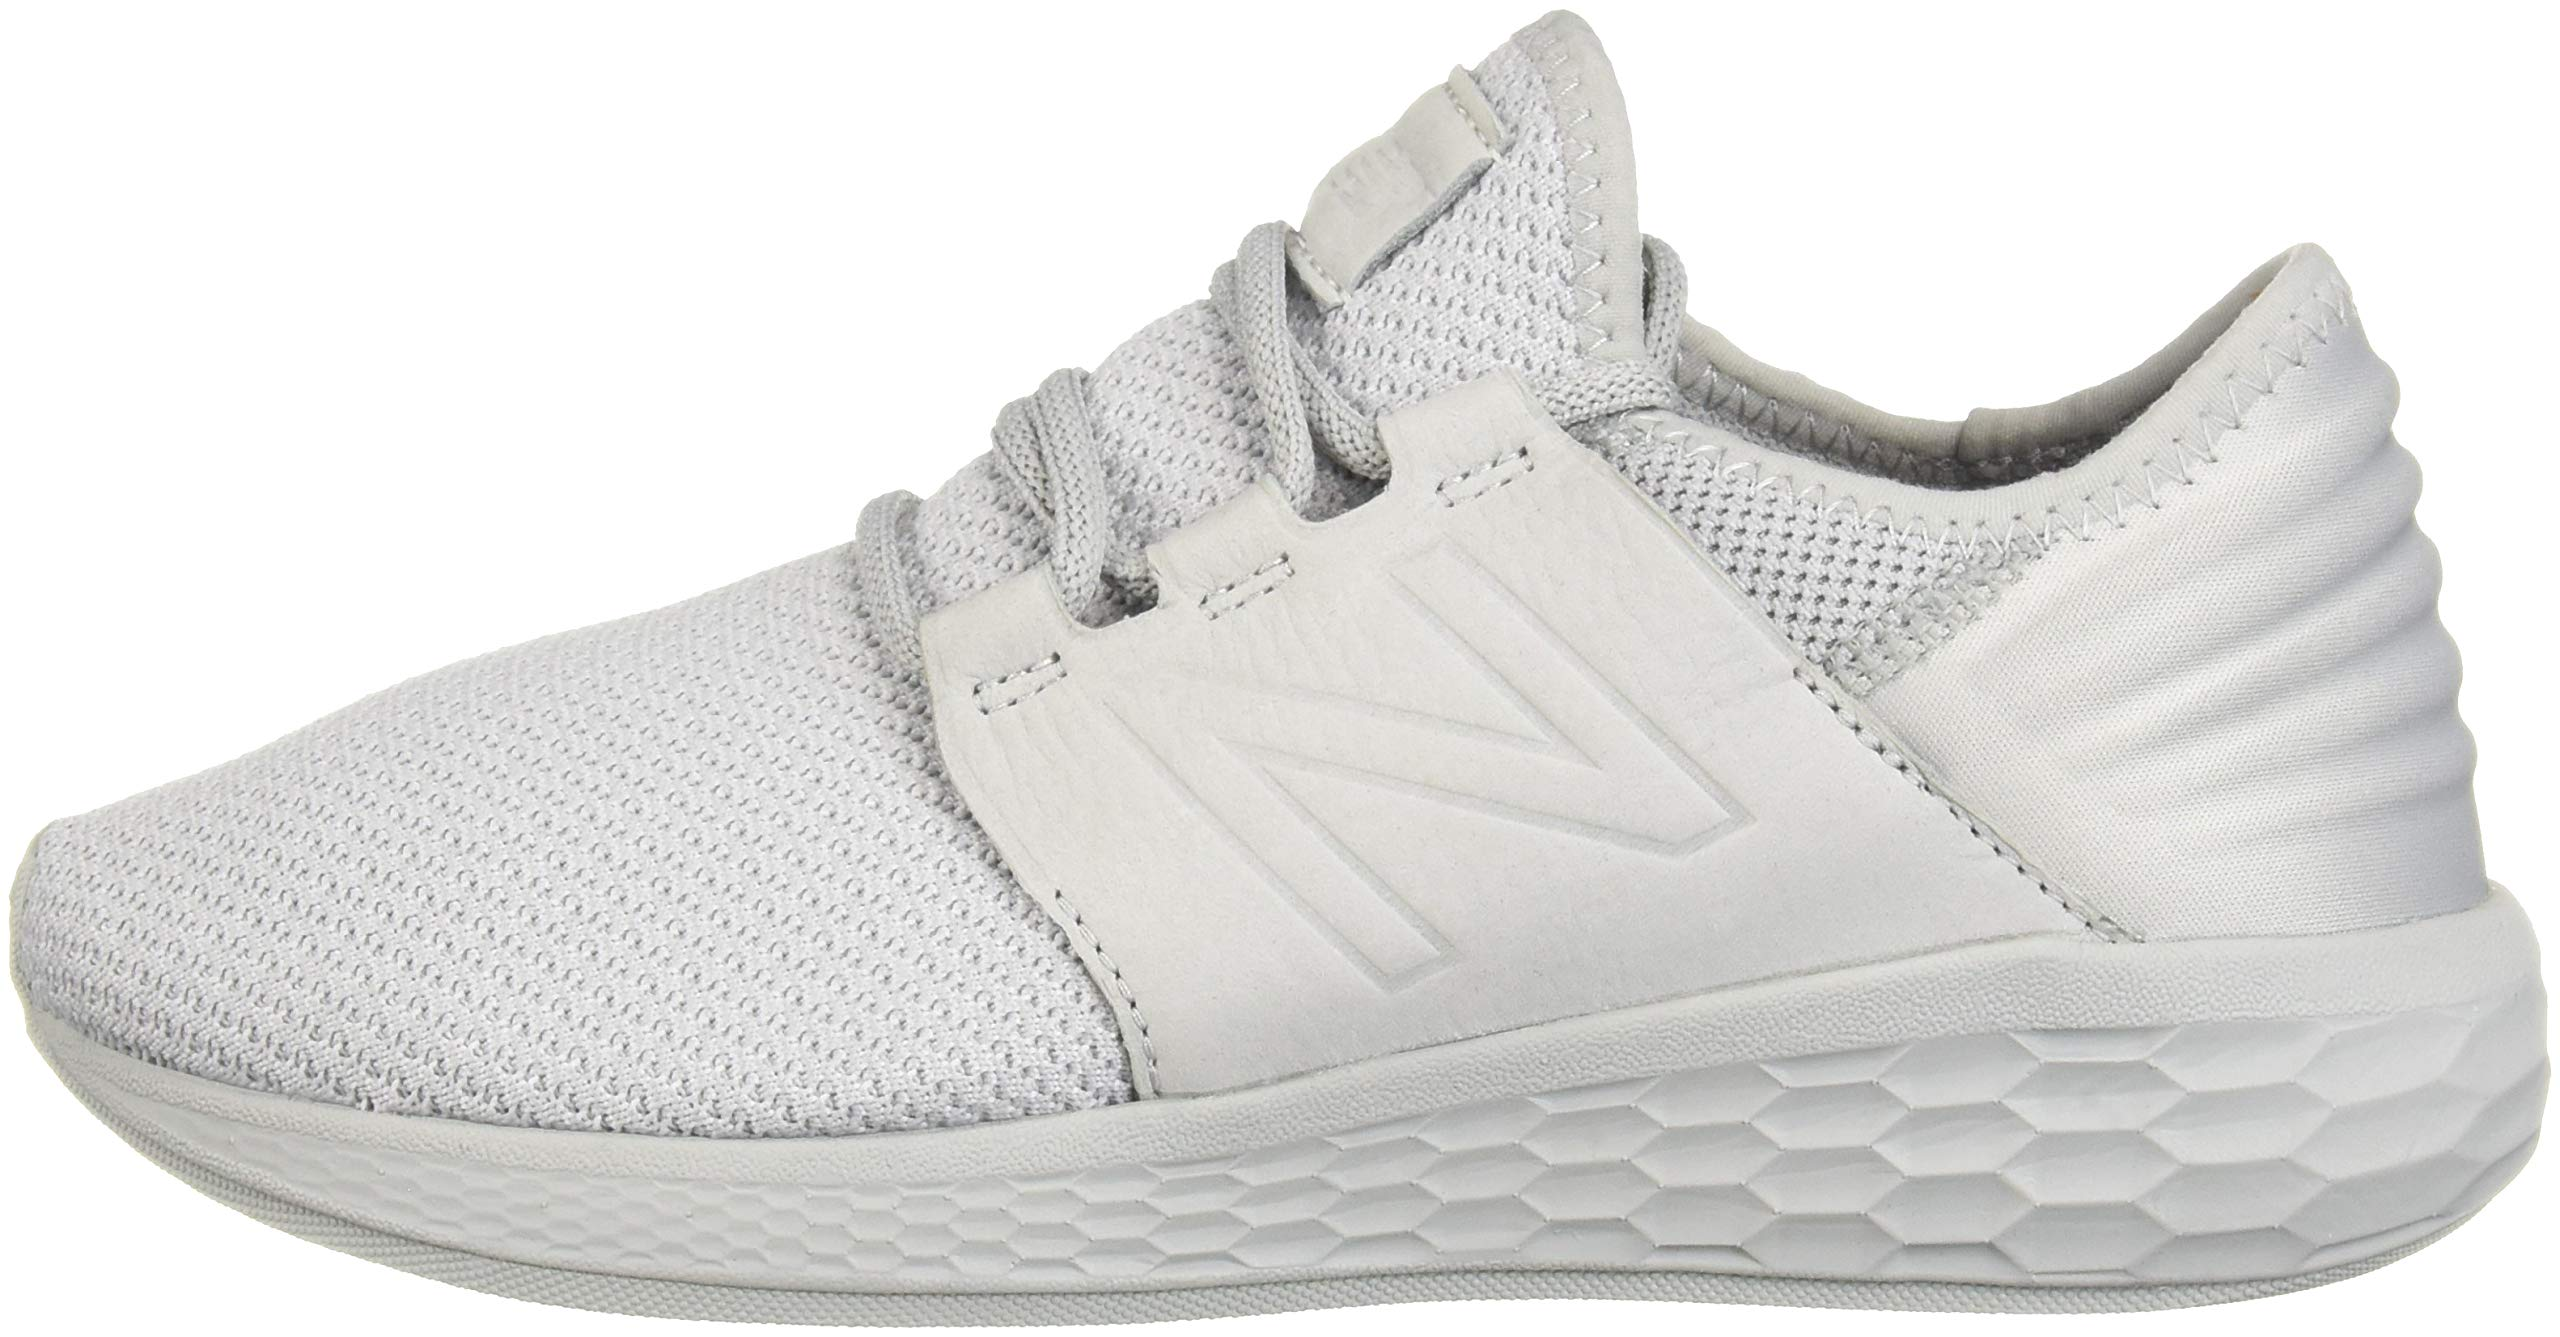 New Balance Men's Cruz V2 Fresh Foam Running Shoe, arctic fox/white/nubuck, 7 D US by New Balance (Image #5)